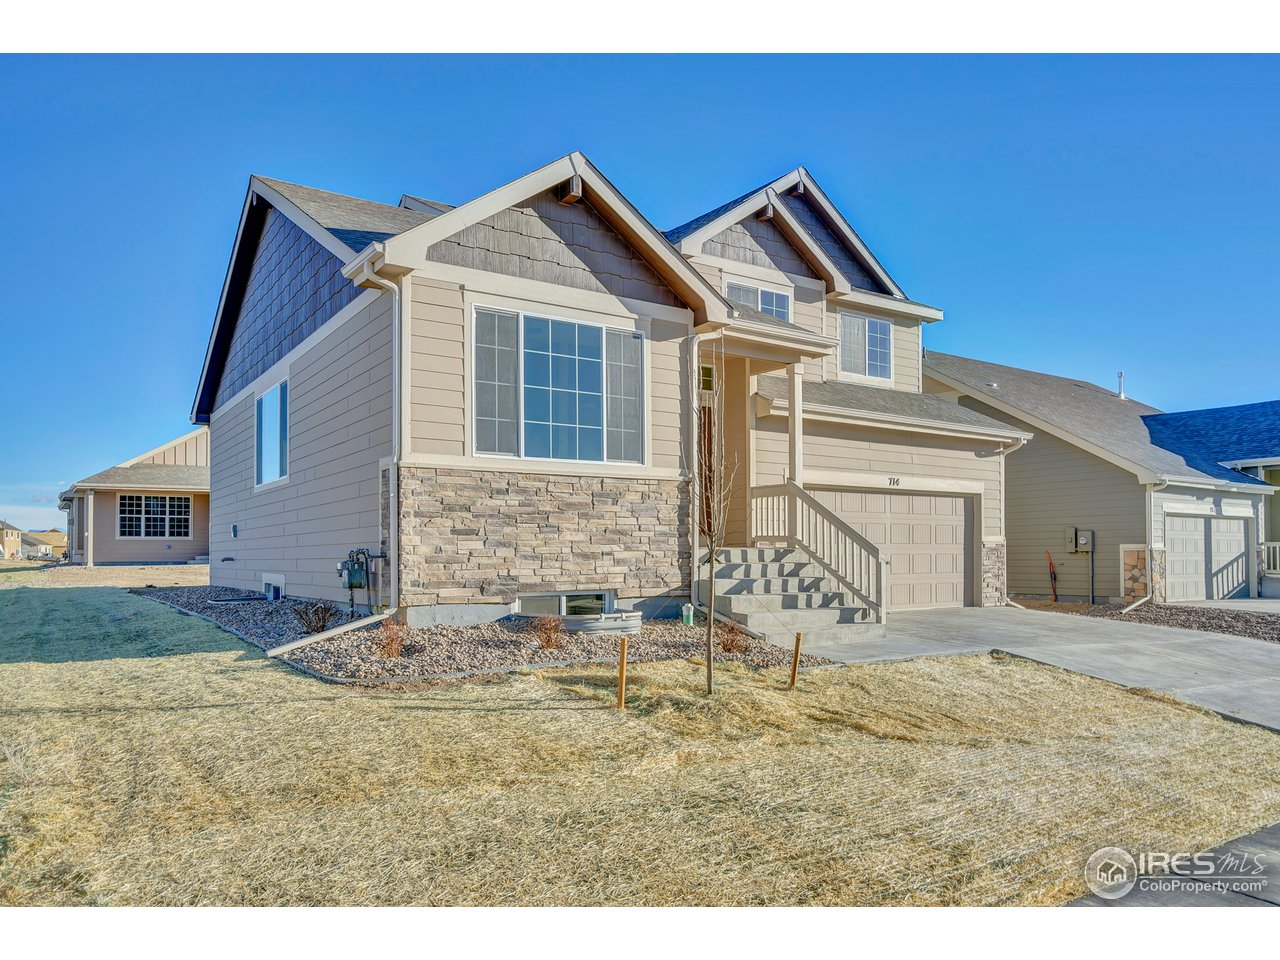 The California plan is a 3 bedroom, 2 1/2 bath split level with 1888 square feet finished and a 530 sq. ft. unfinished basement. A warm and spacious living room/kitchen welcome you home on the main level. A few steps away is a great room on the lower level. The master suite features a 5 piece master bath and a generoud walk in closet. A 3 car tandem completes this lovely home.